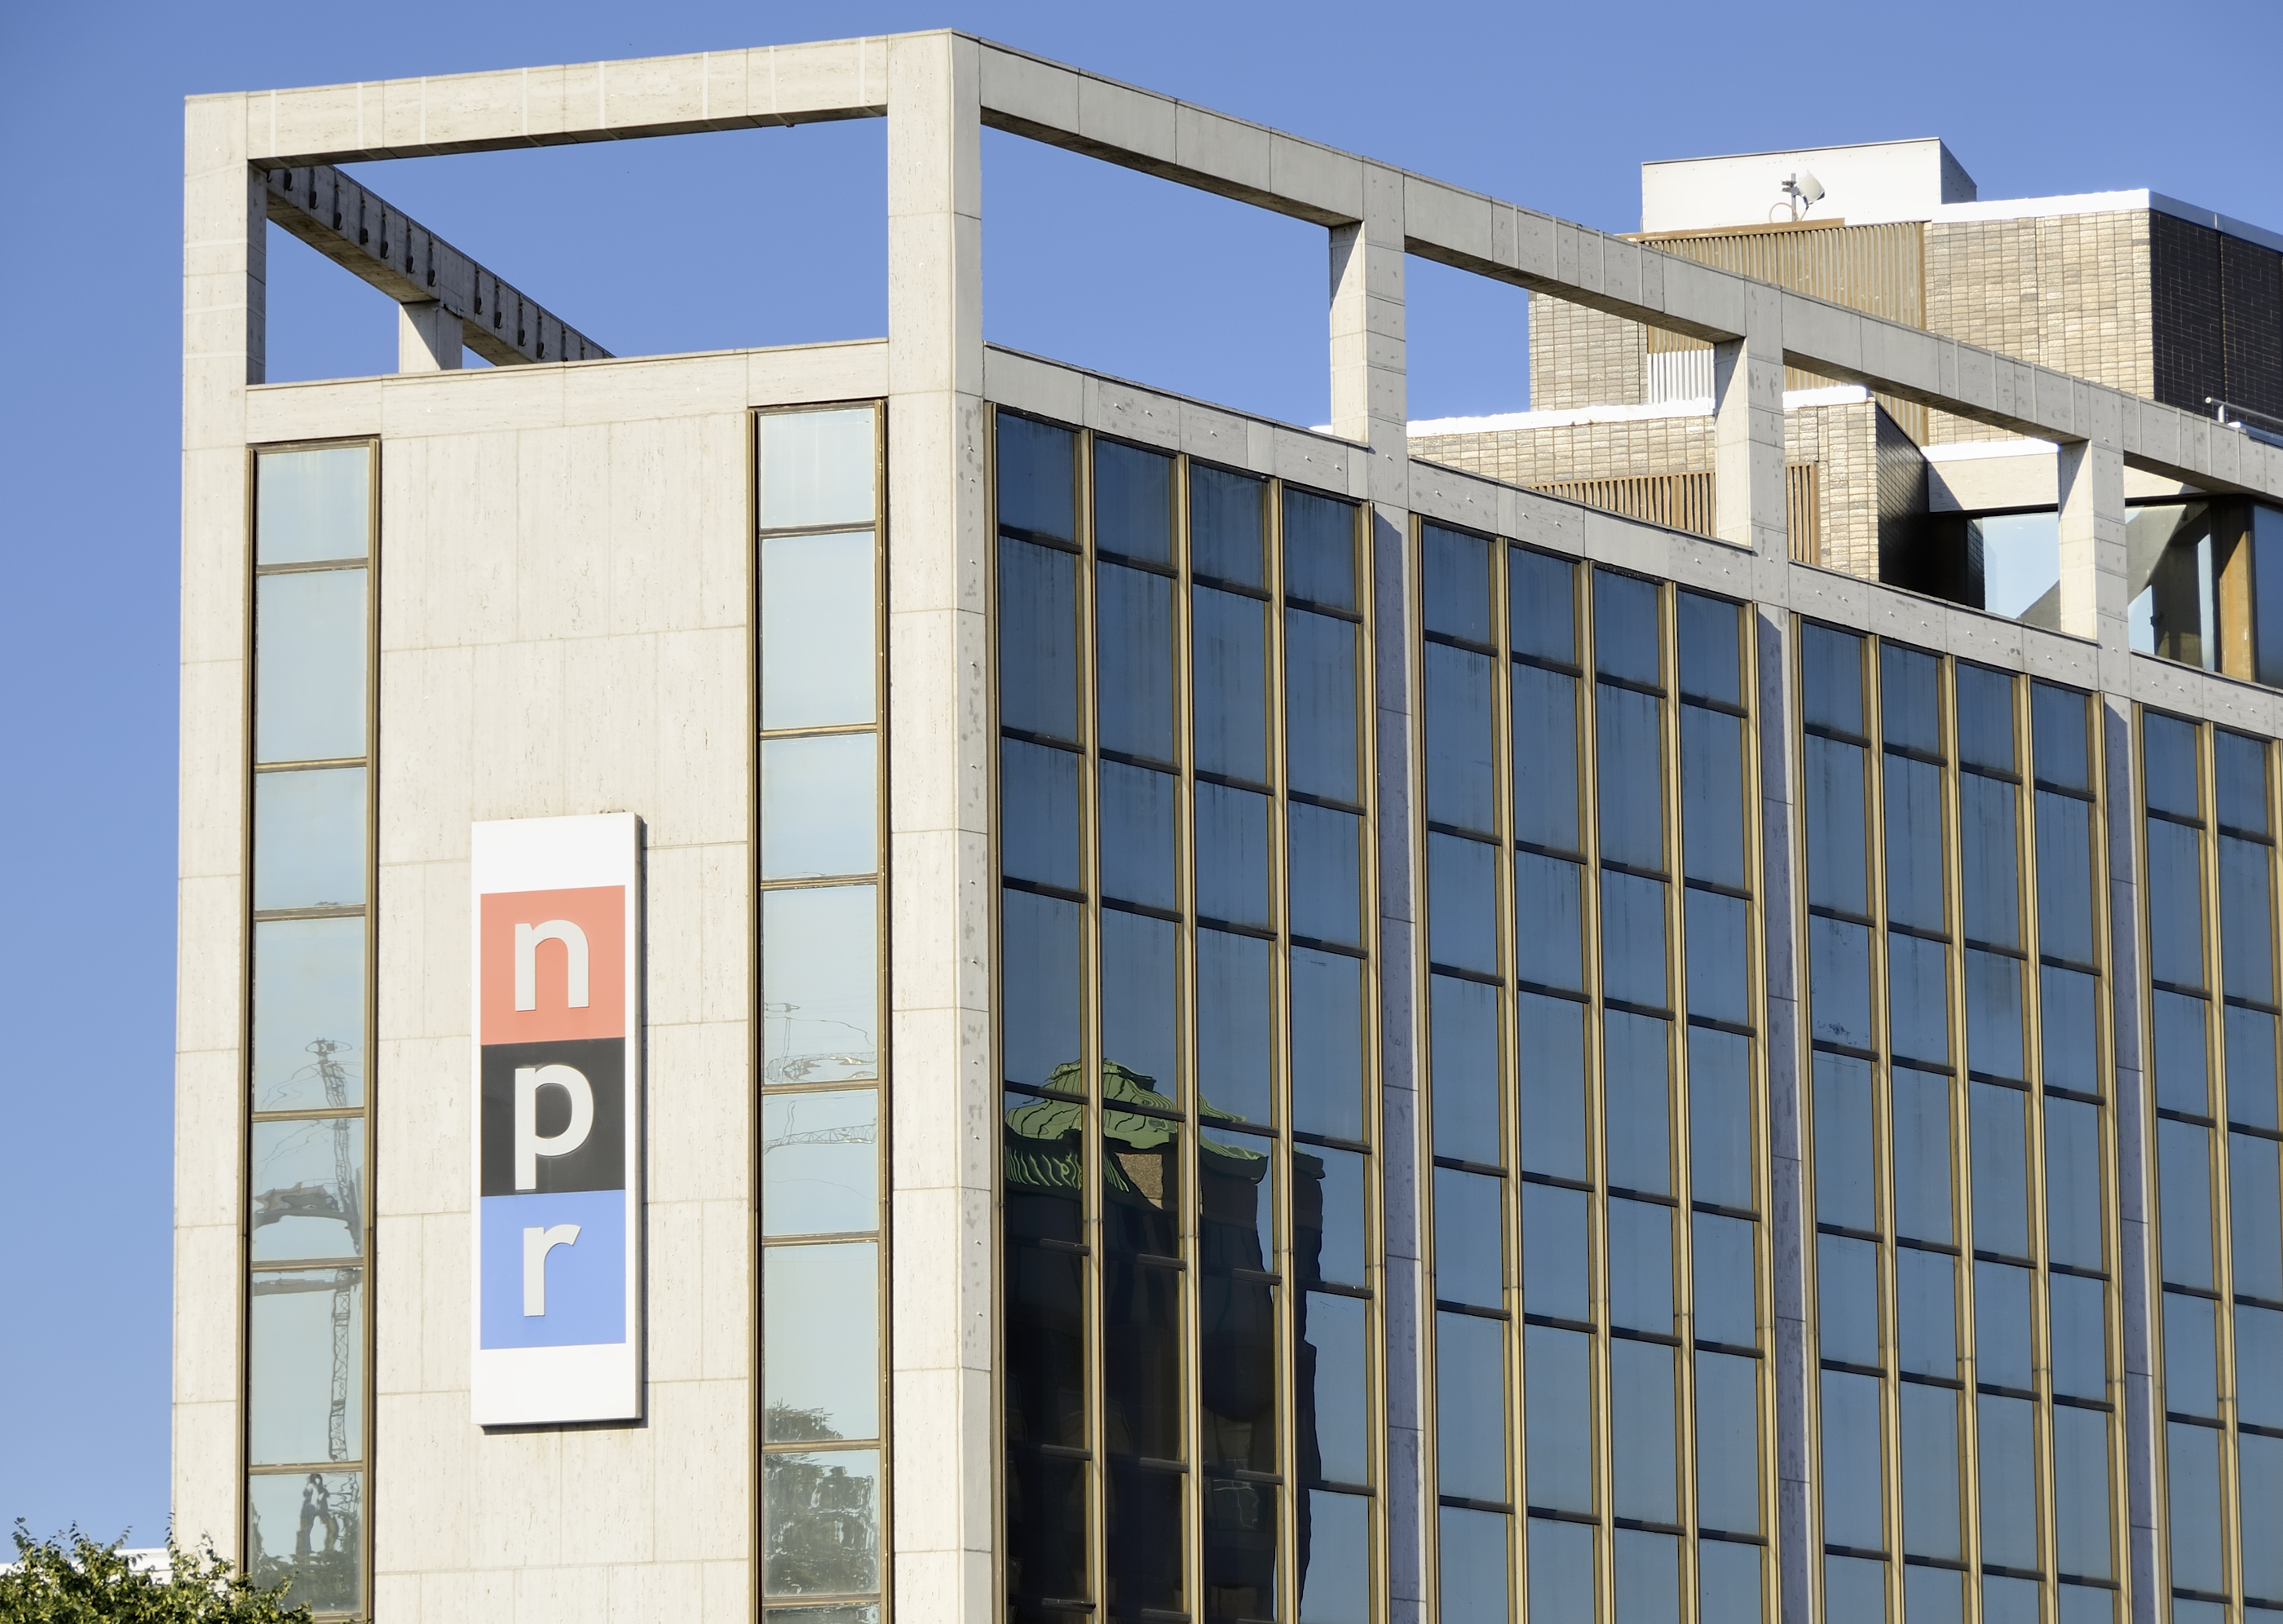 Washington DC, USA - June 4, 2012: The NPR (National Public Radio) building in Washington DC. Founded in 1970, NPR is a non-profit network of 900 radio stations across the United States.